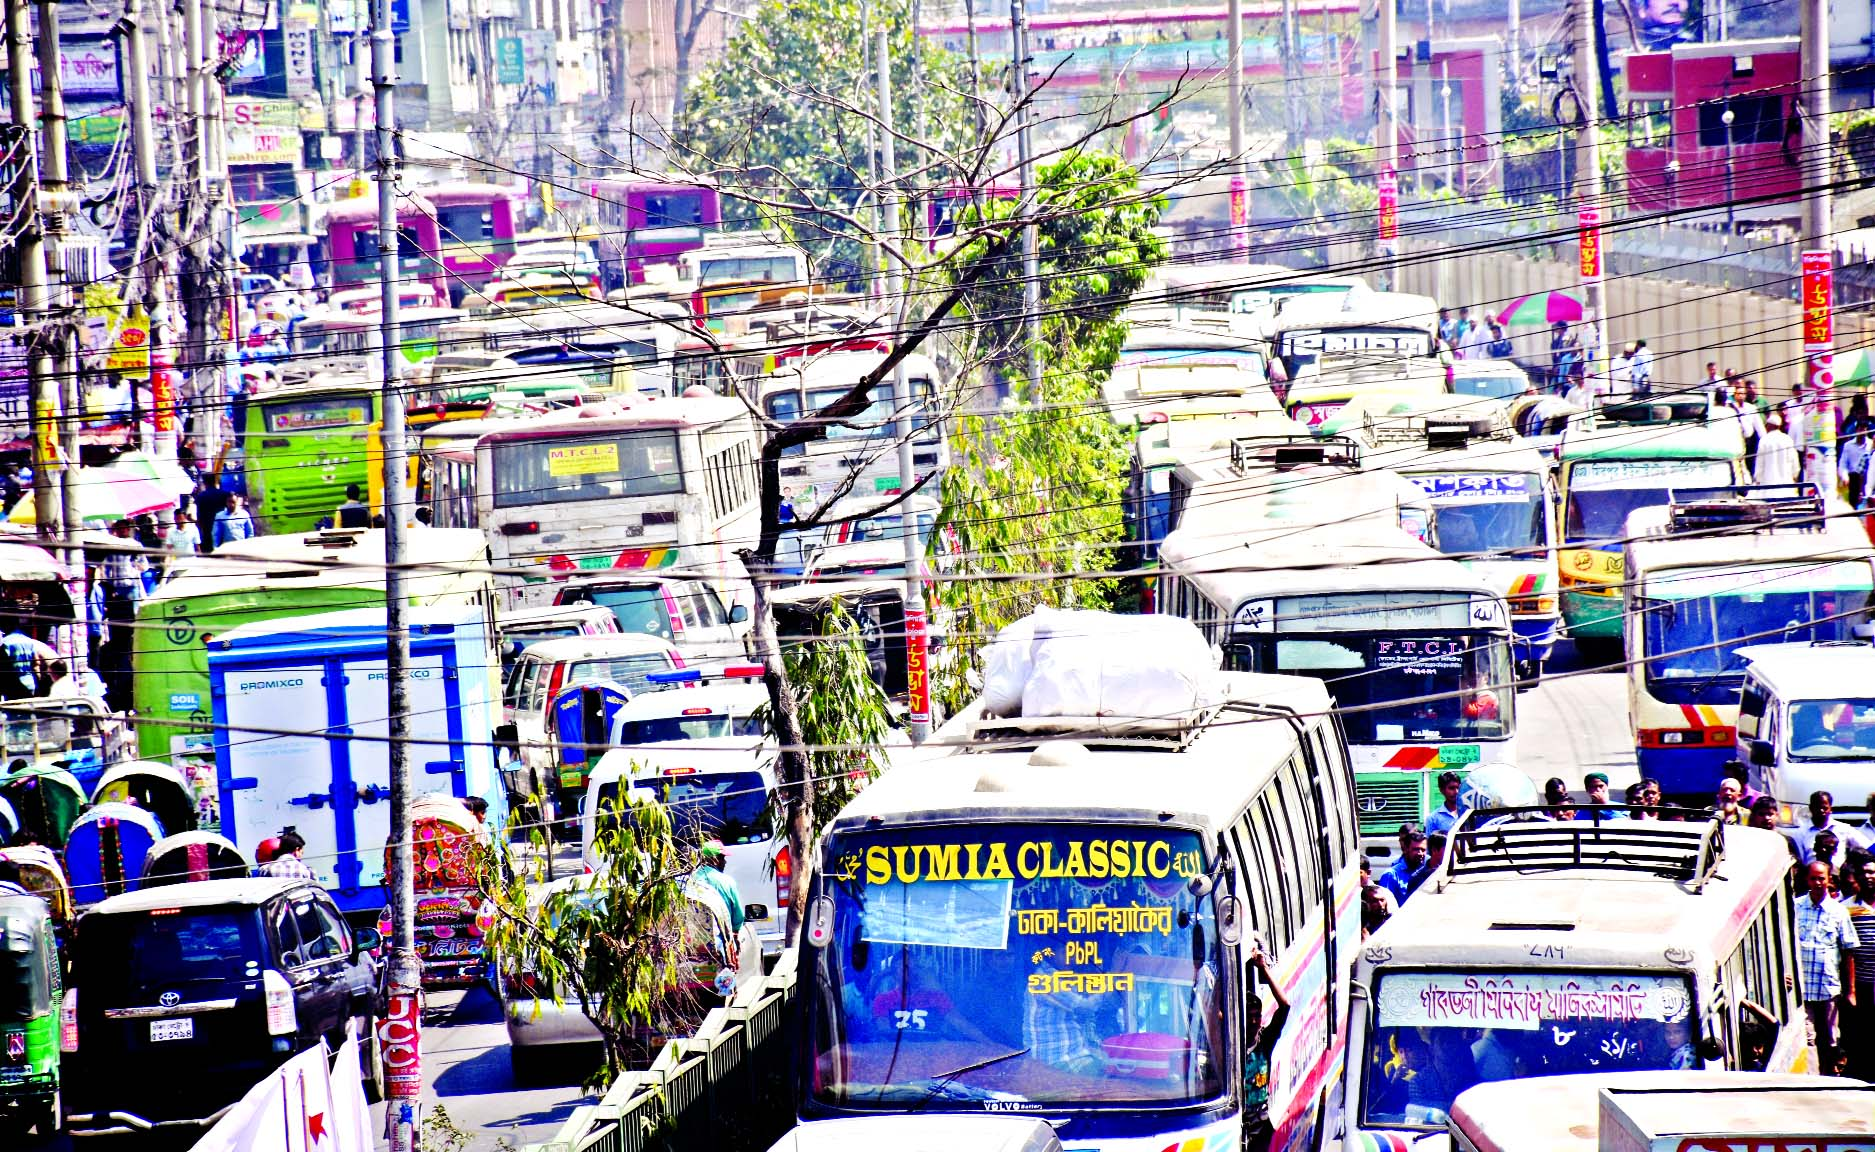 Hundreds of vehicles being stuck from Jatiya Press Club towards Paltan area due to meetings, rallies of various organisations which are a regular phenomena. But the authorities concerned are indifferent to help end traffic congestion. This photo was taken on Sunday.